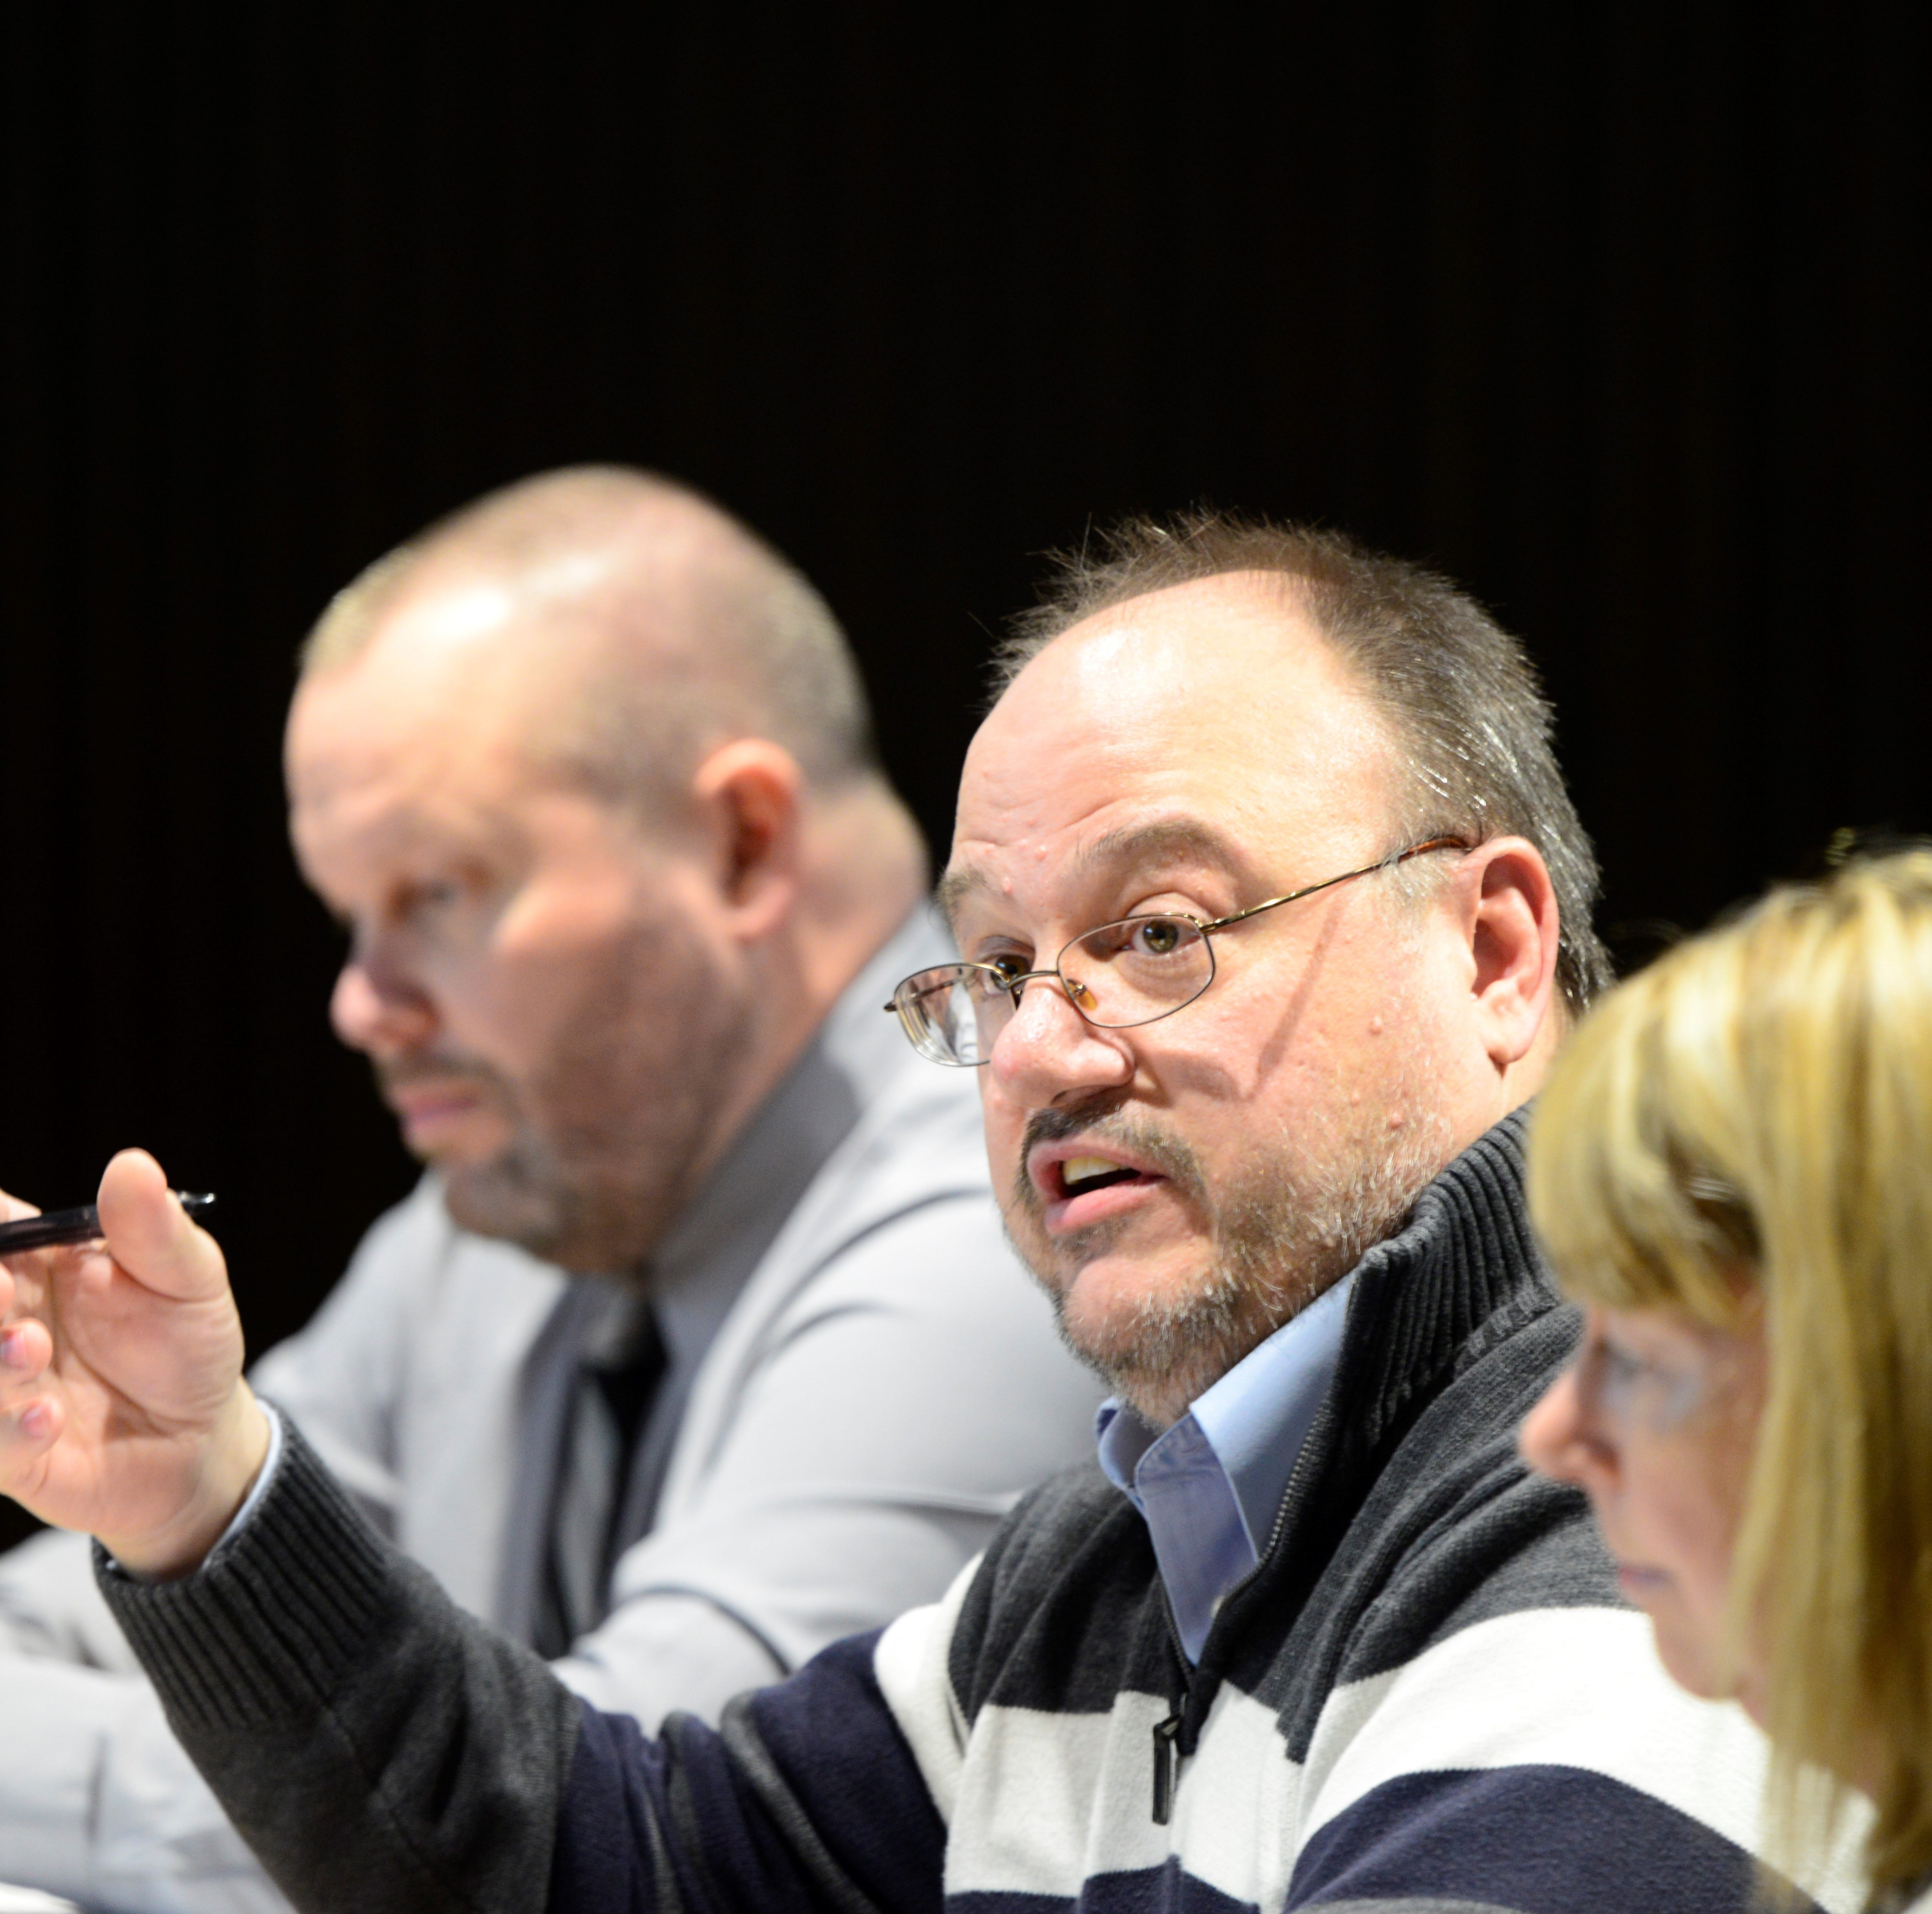 City finance officials warn costs may exceed revenue in near future